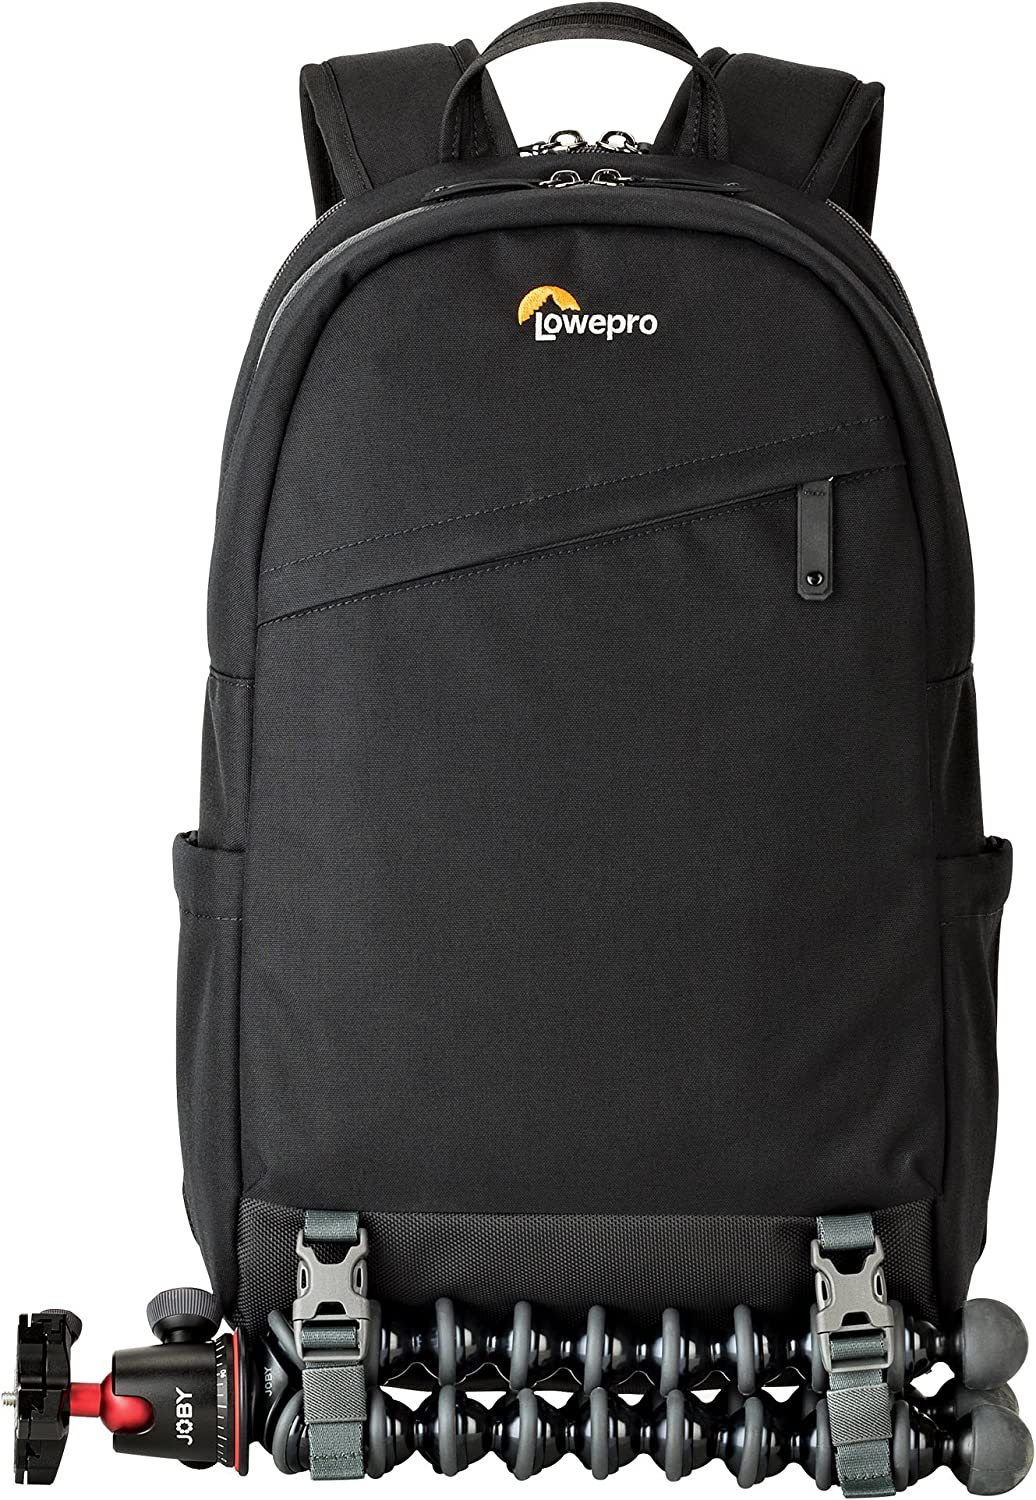 Lowepro m-Trekker BP 150 Black Weather Resistant Travel Backpack for Mirrorless Cameras and Camera Accessories